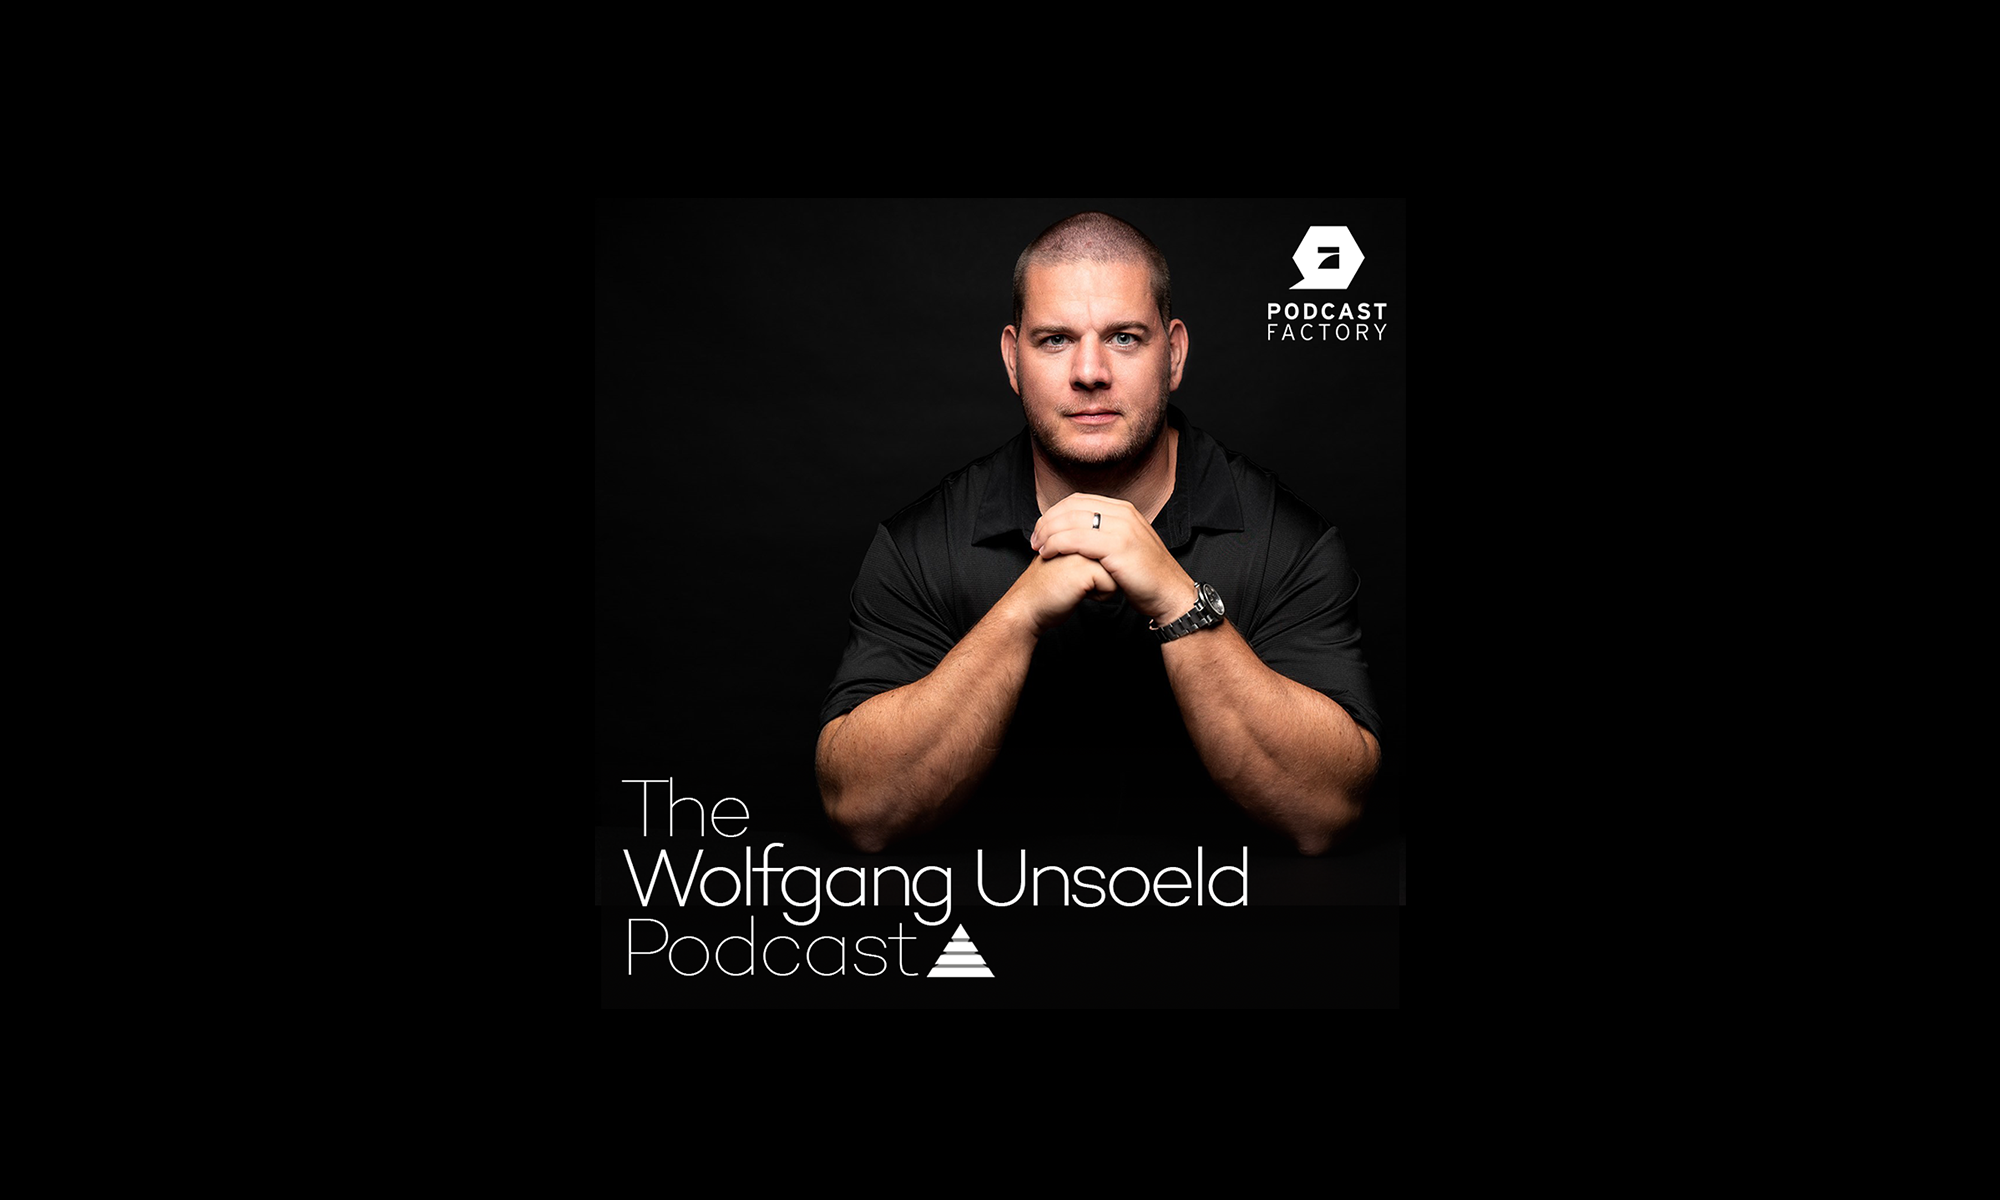 The Wolfgang Unsoeld Podcast